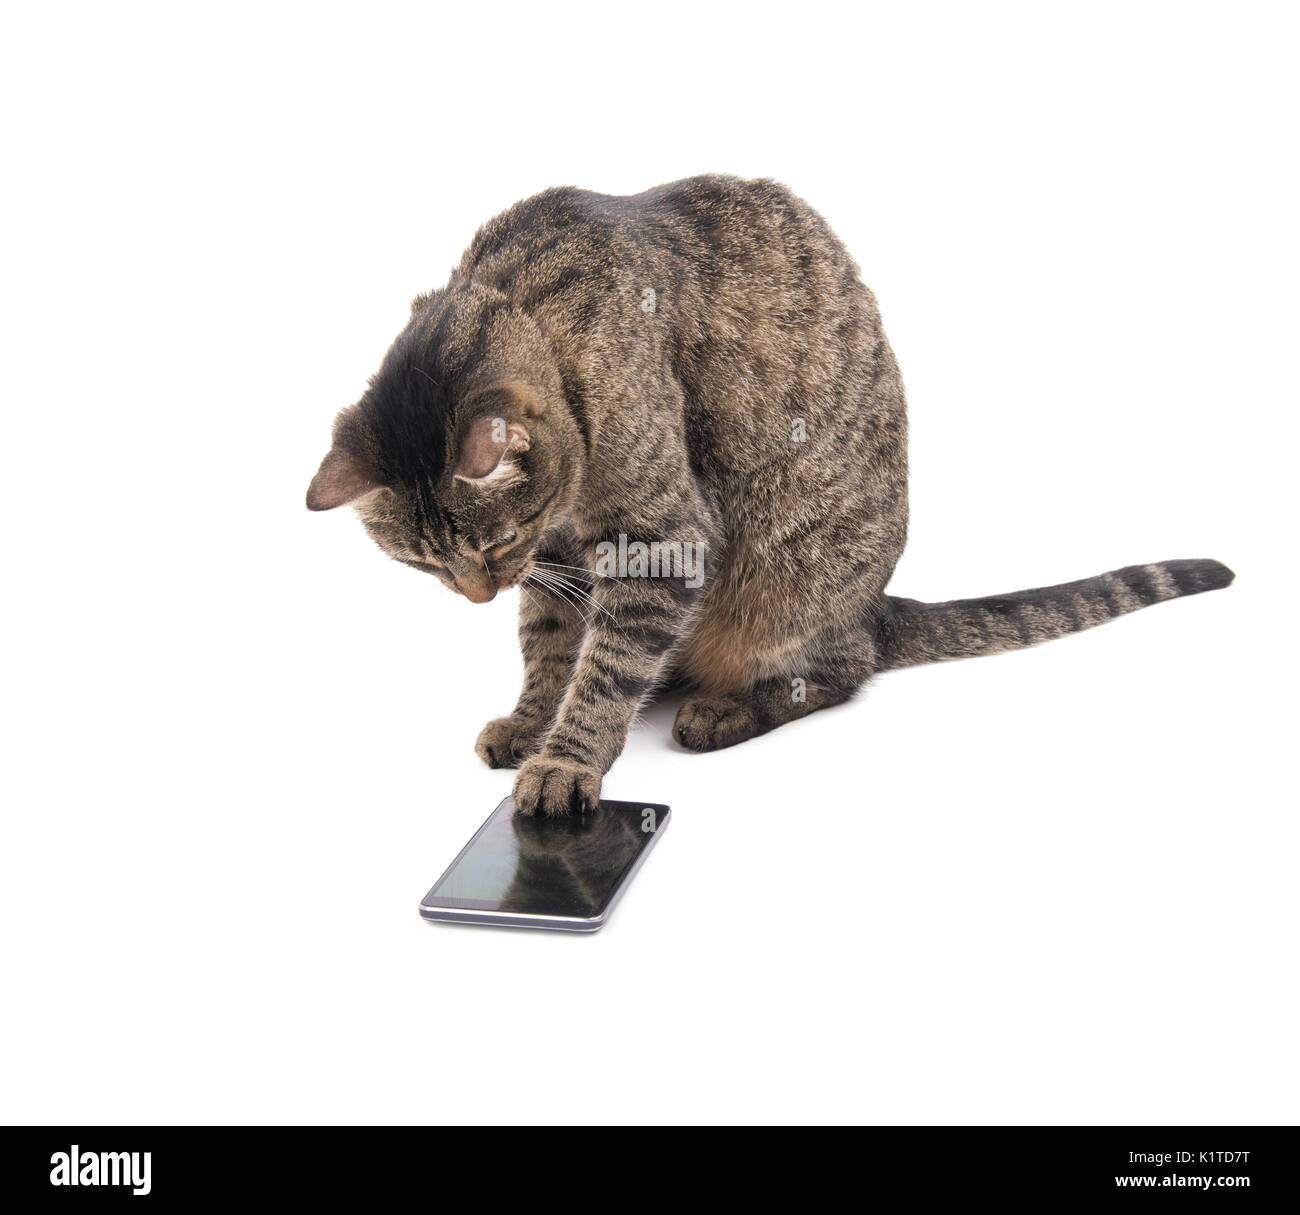 Brown tabby cat tapping on a smart phone screen with her paw, on white - Stock Image